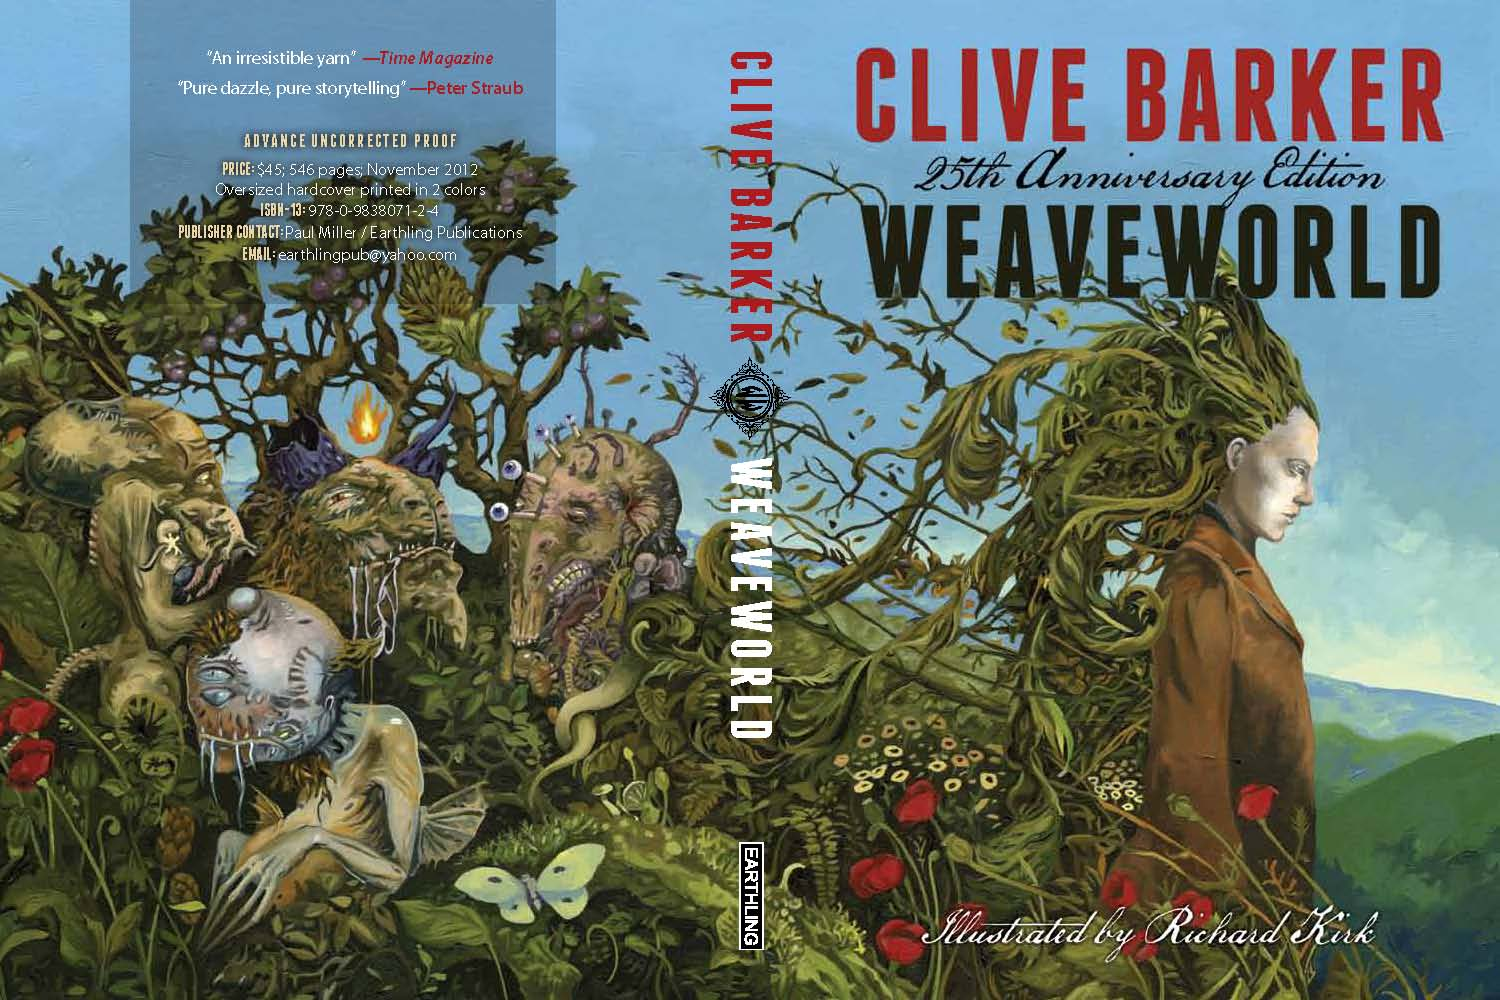 Weaveworld - 25th Anniversary edition (art - Richard Kirk)